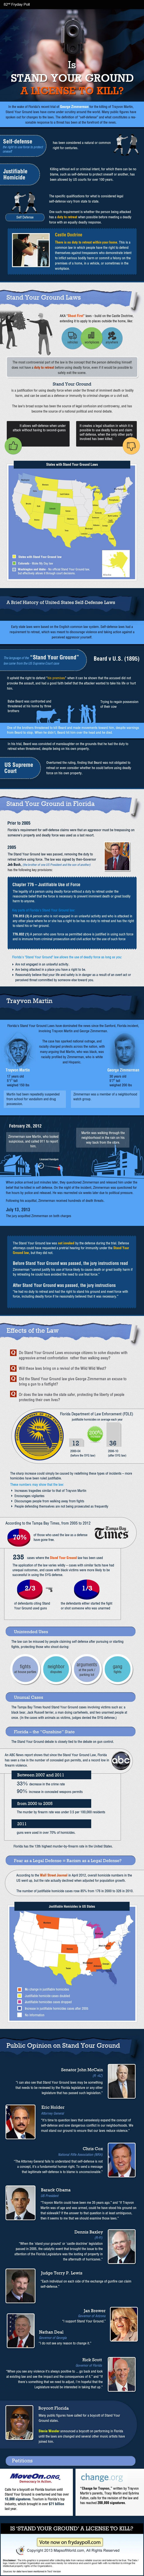 Is Stand Your Ground A License To Kill Infographic On Stand Your Ground Laws Facts Infographic Self Defense Laws Self Defense Us State Map